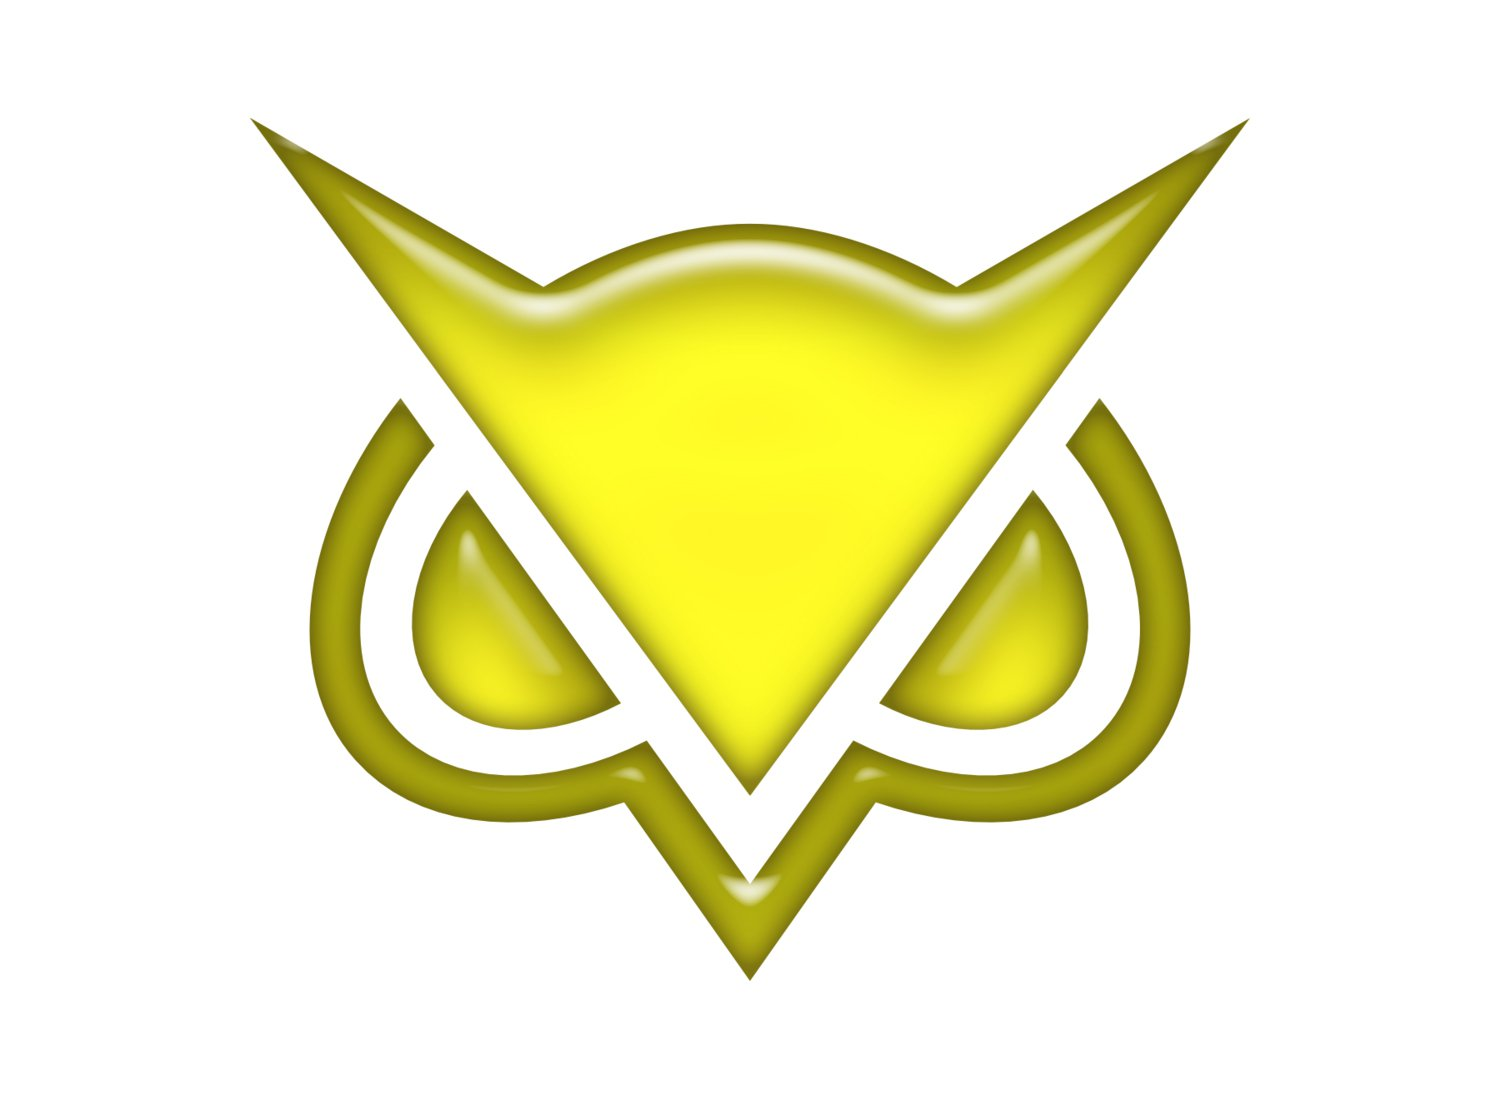 Meaning VanossGaming logo and symbol.